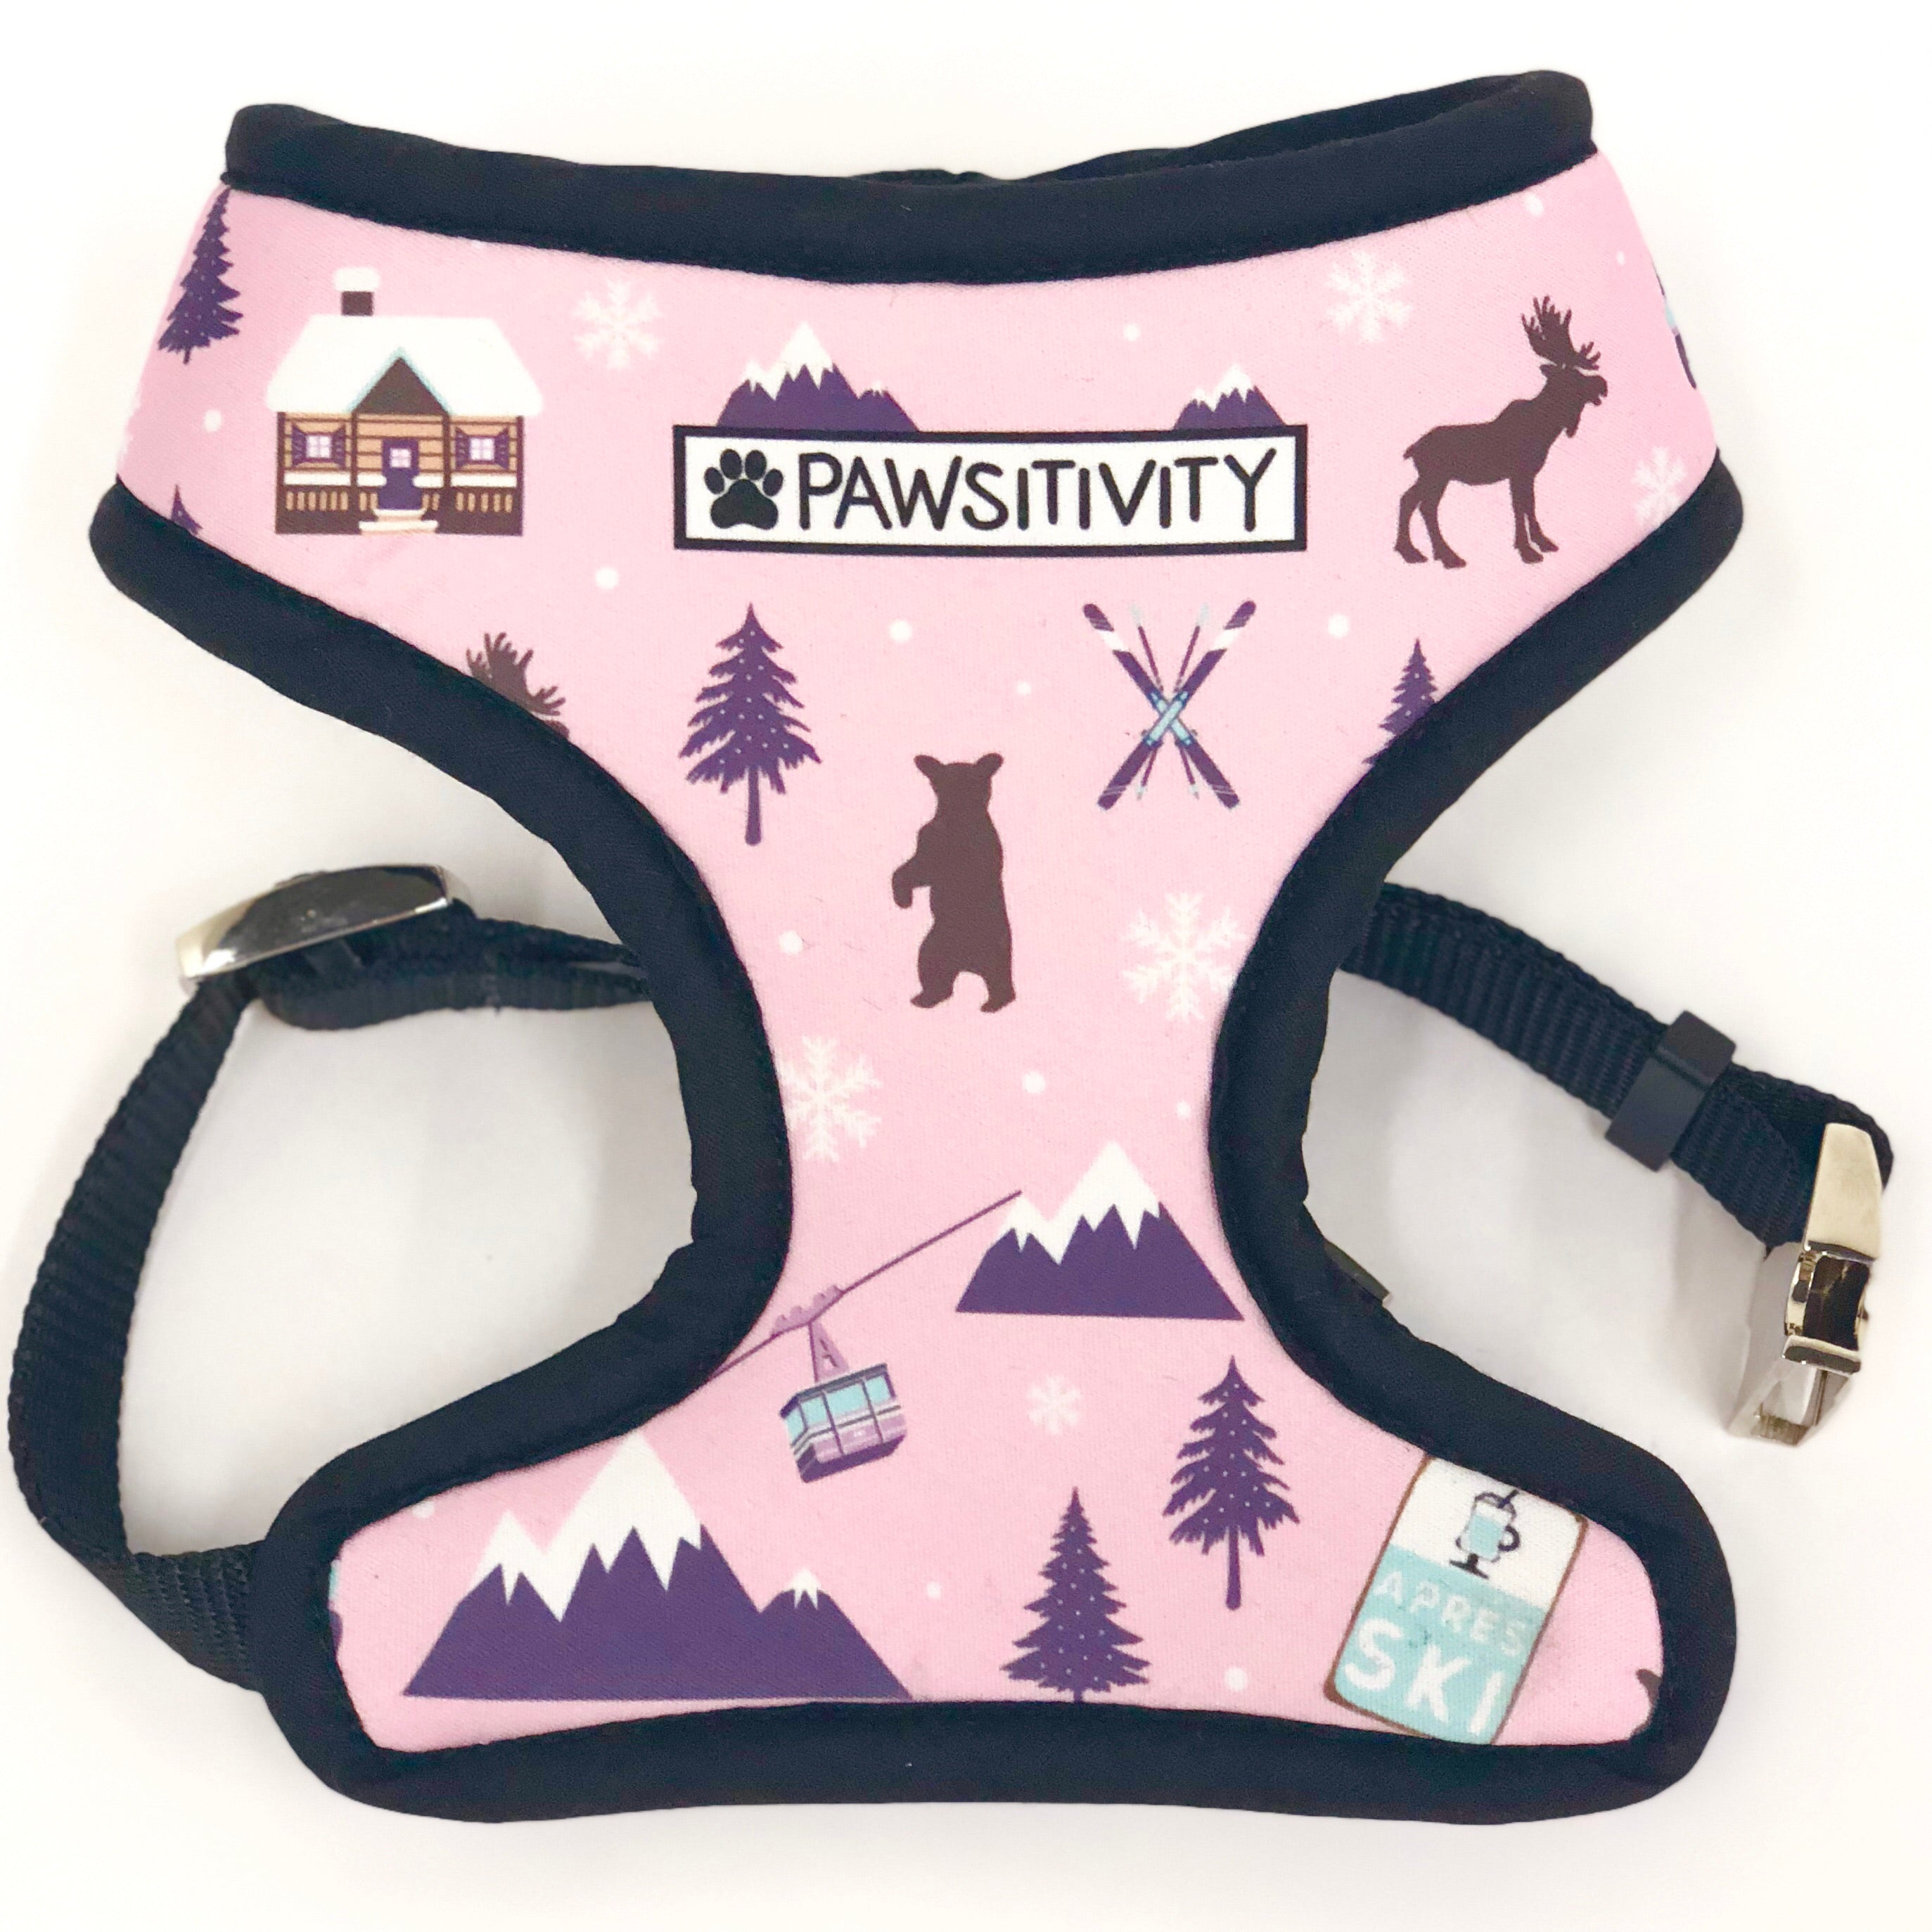 Pawsitivity Reversible Harness - Winter Explorer Pink & Birch